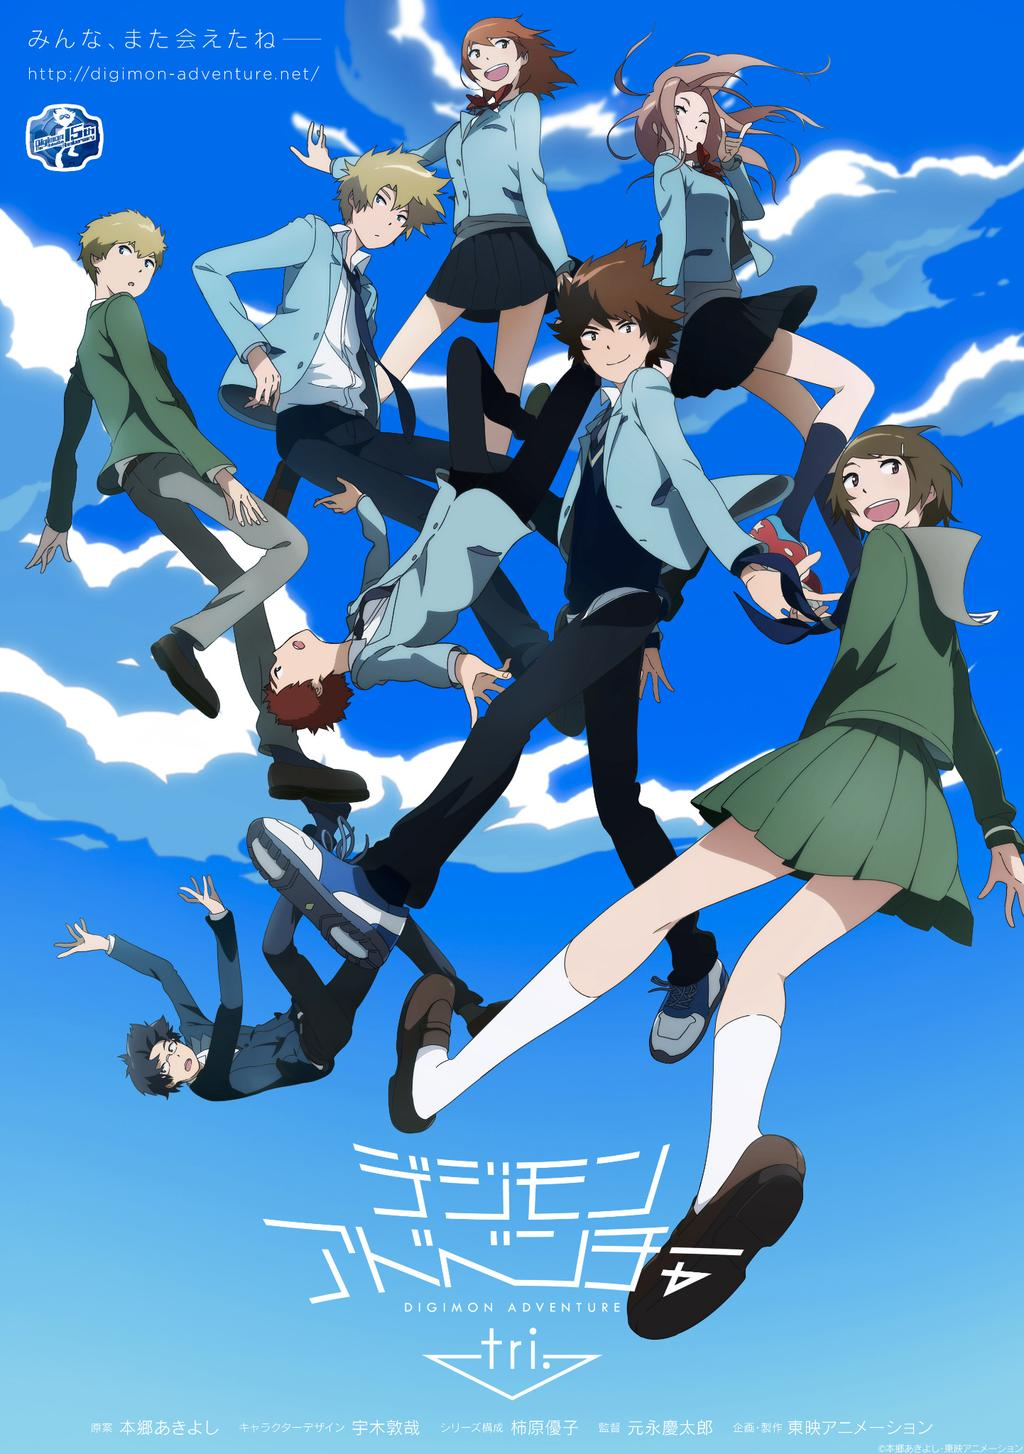 [MANGA/ANIME] Digimon Adventure Latest?cb=20141214021705